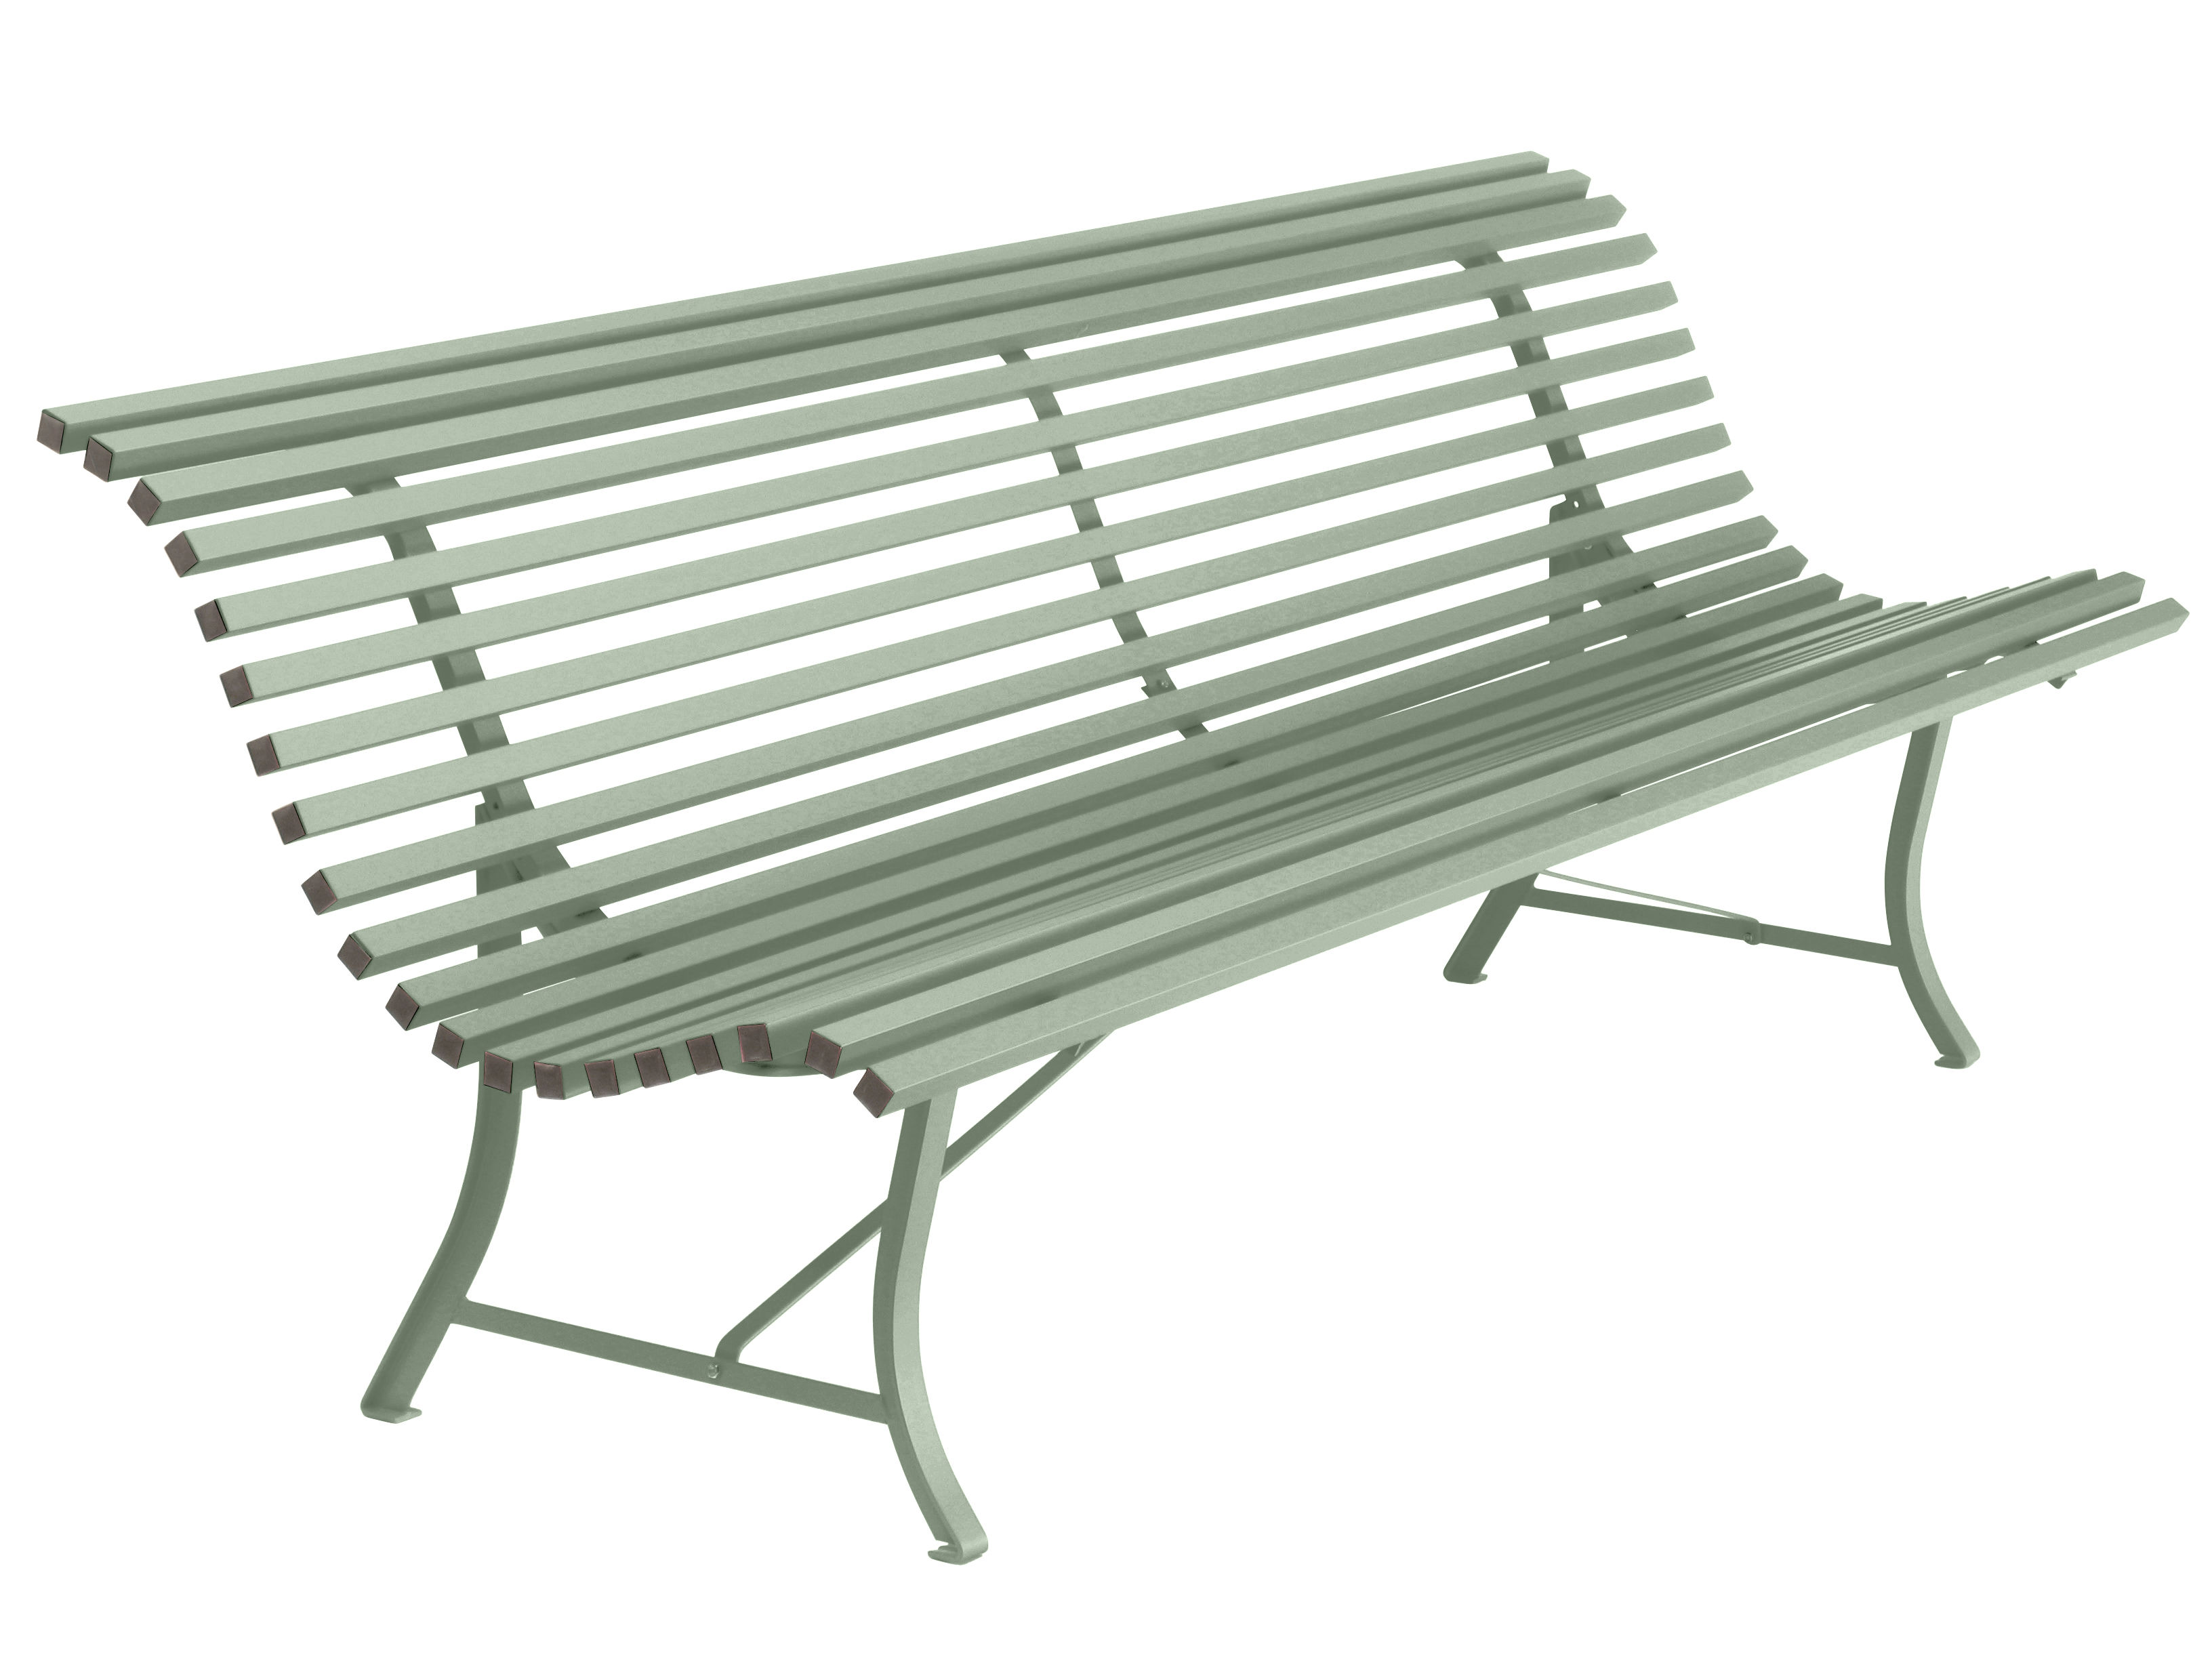 Outdoor - Benches - Louisiane Bench with backrest - / L 200 cm - Metal by Fermob - Cactus - Electro-galvanized steel